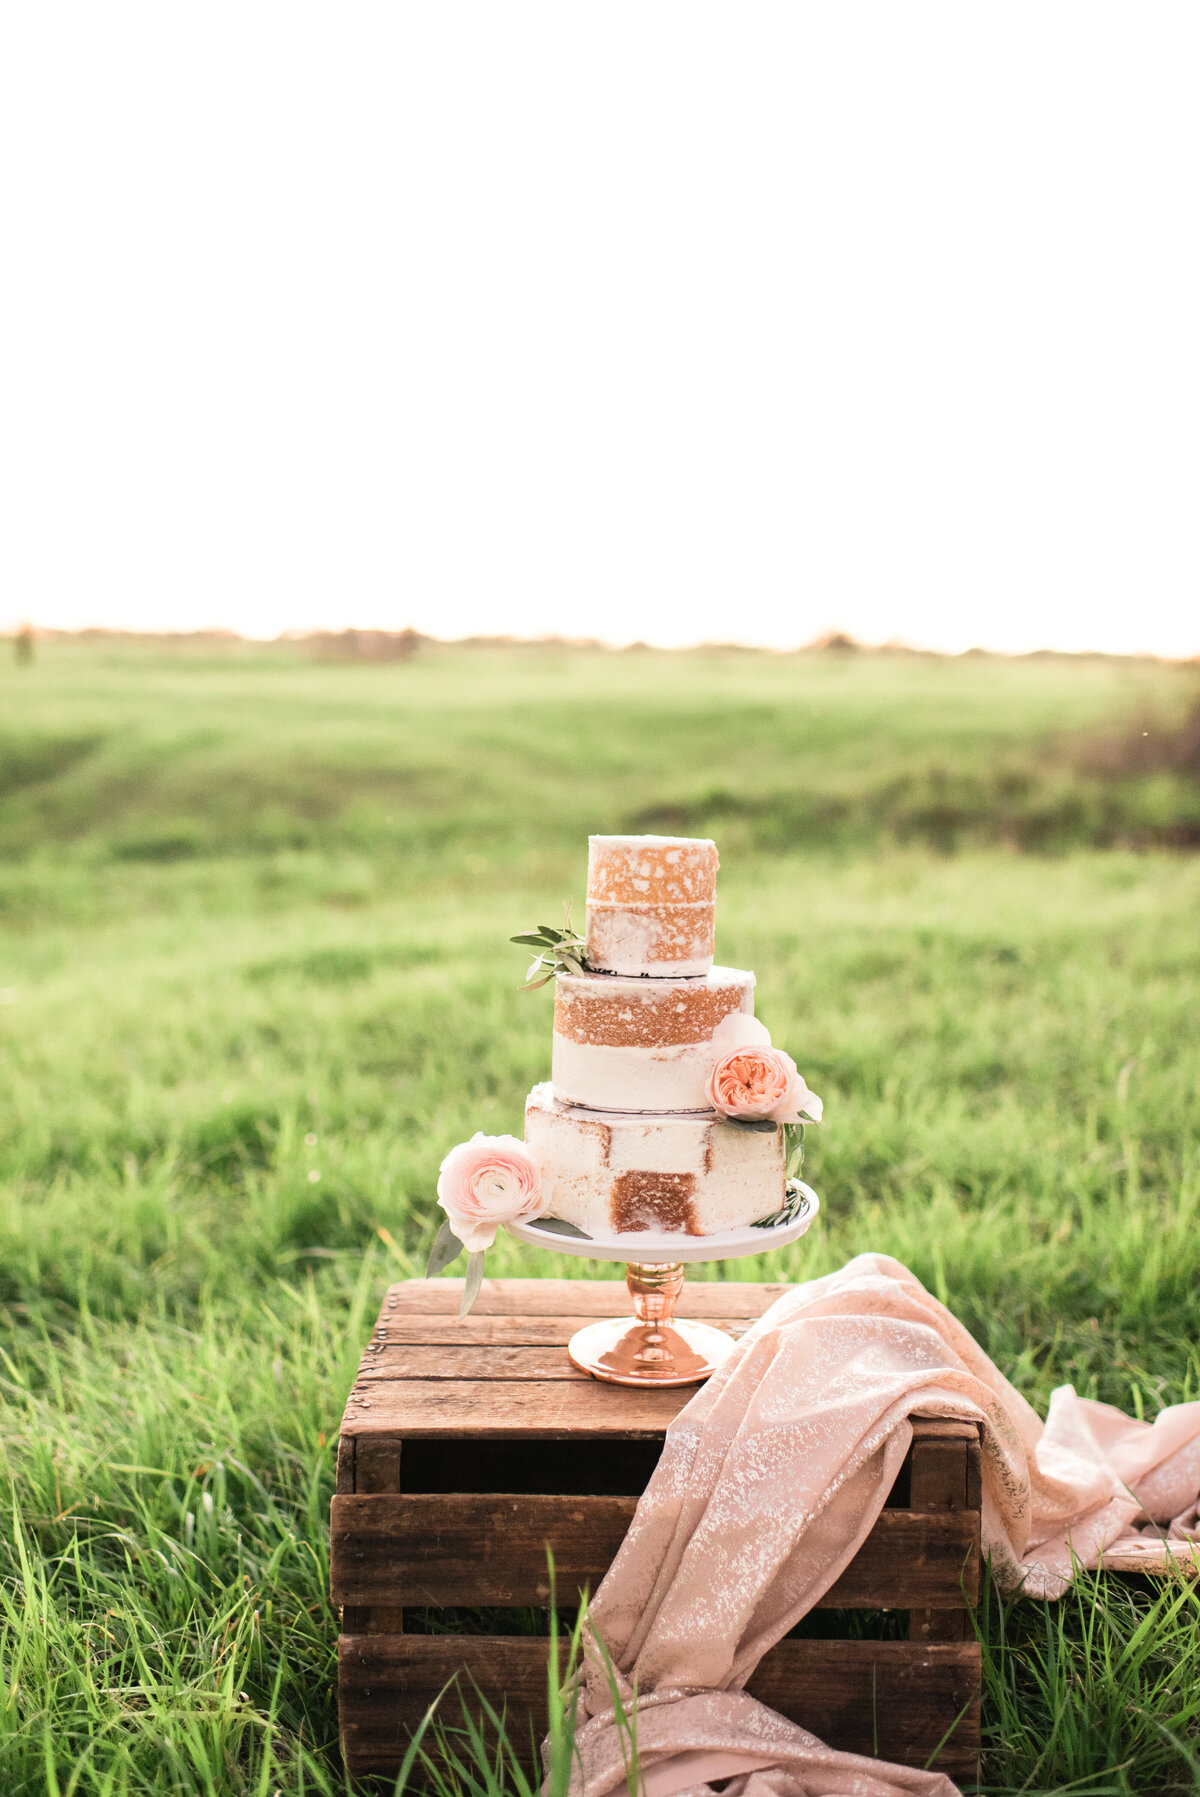 A gorgeous naked pink wedding cake photographed in a lush green field